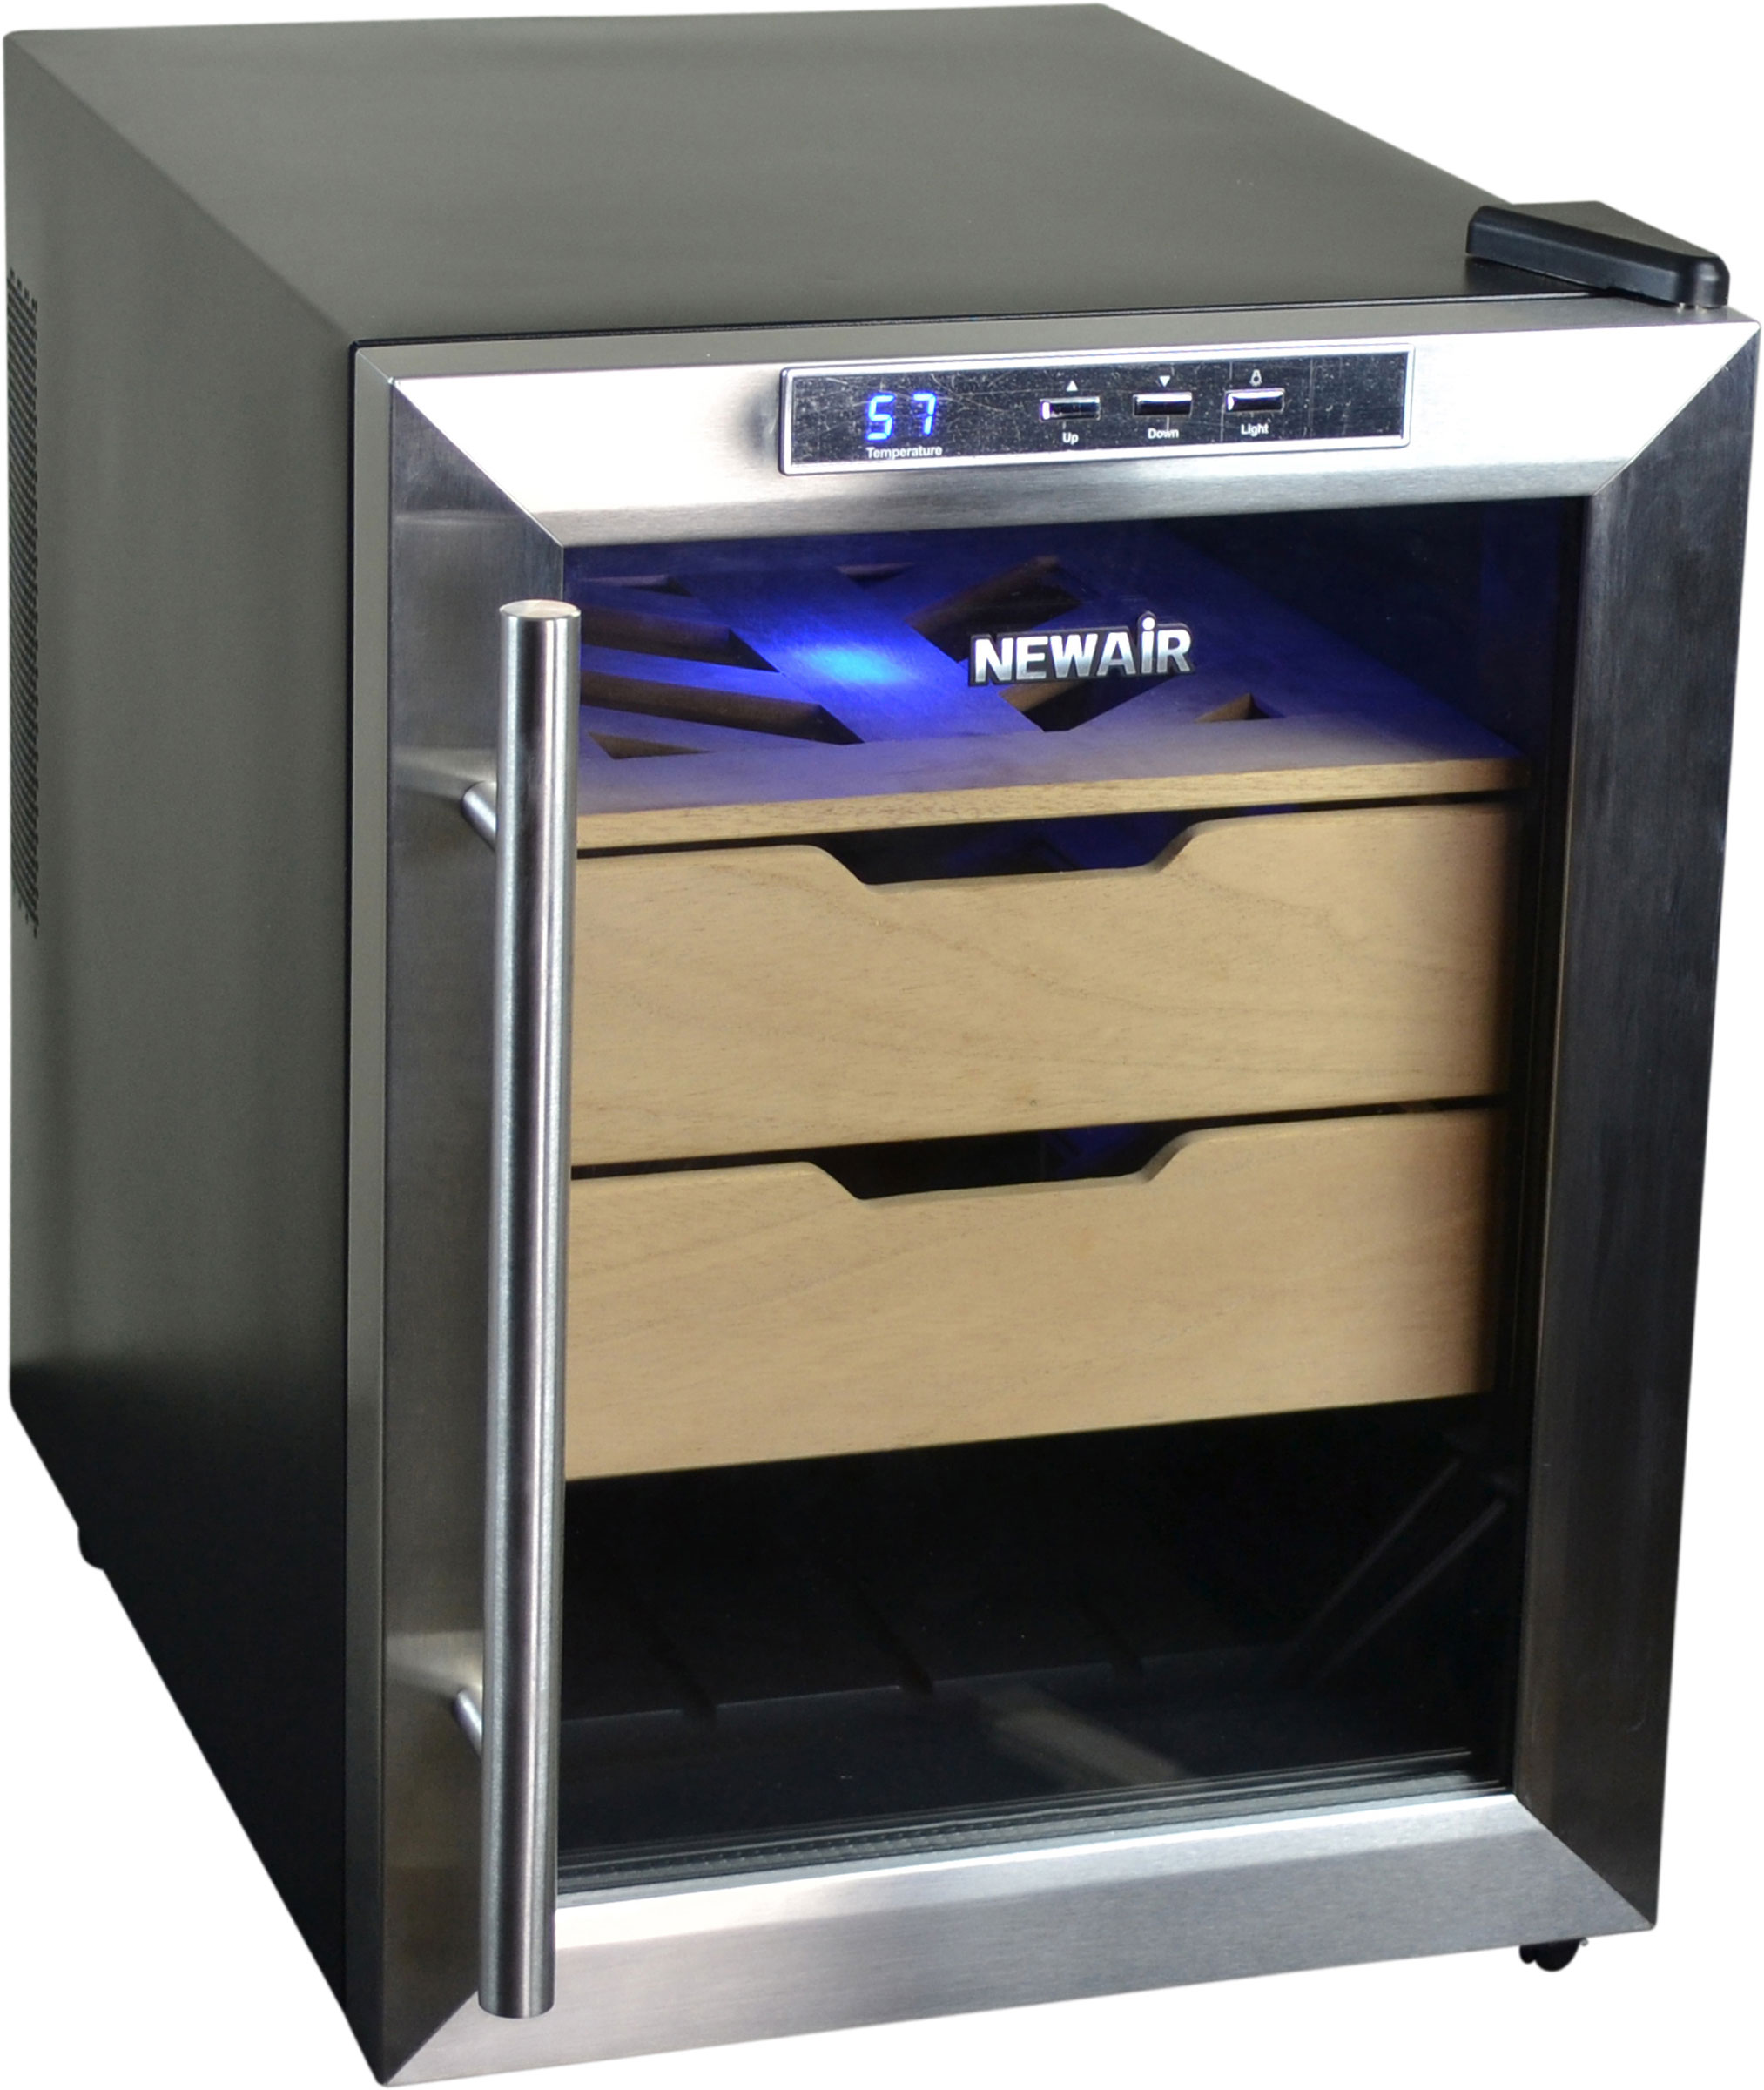 NewAir CC-121E Thermoelectric Humidor Cigar Cooler